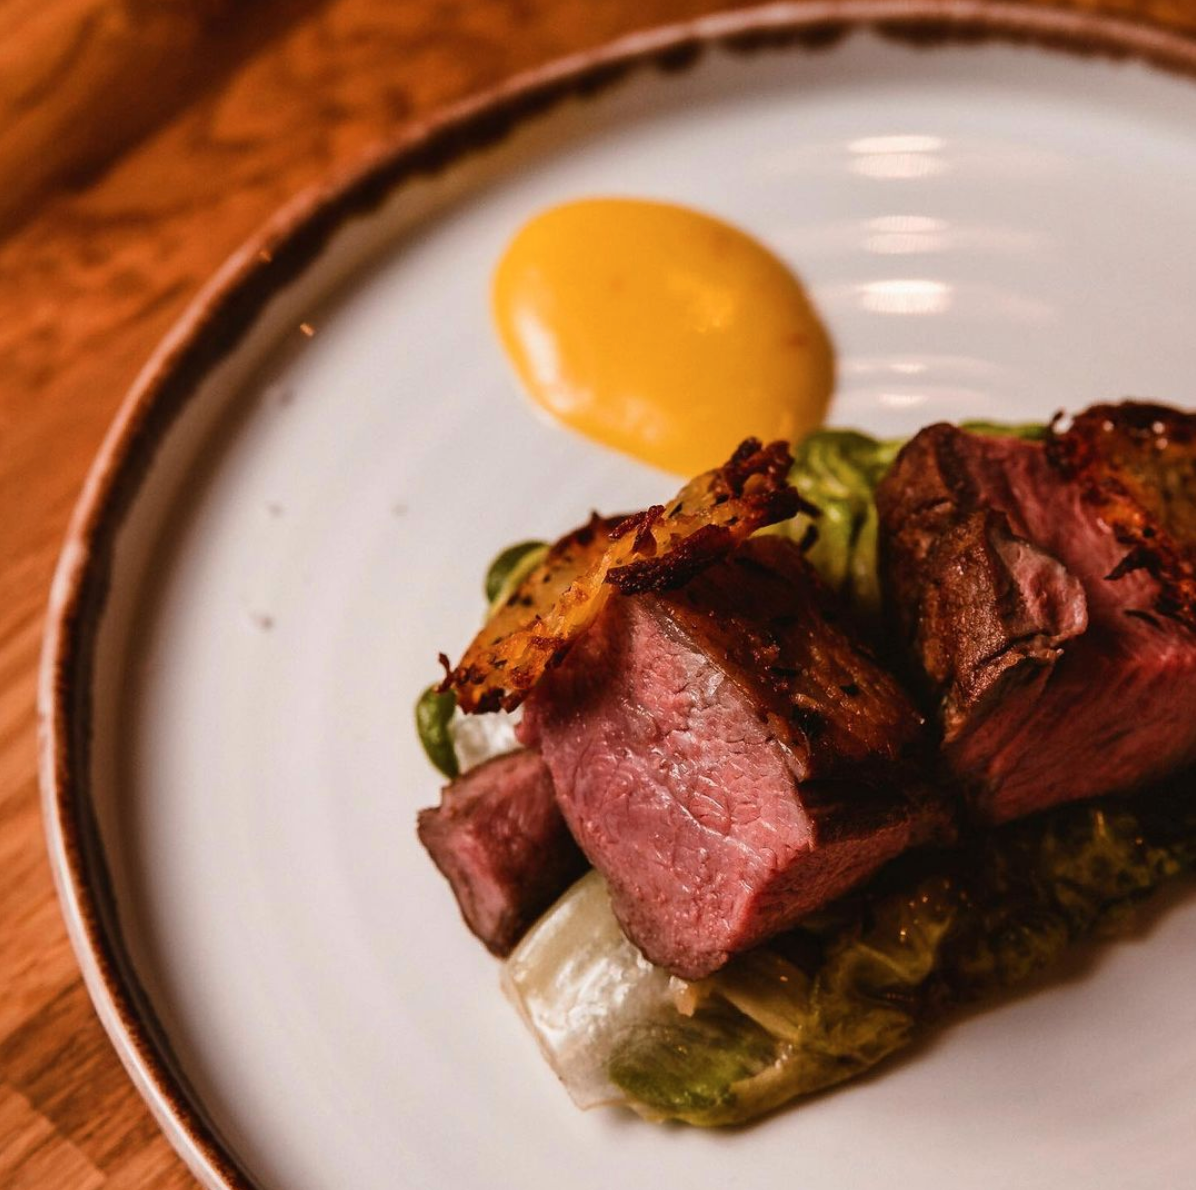 Two Manchester bars team up to launch new restaurant on Tib Lane, The Manc